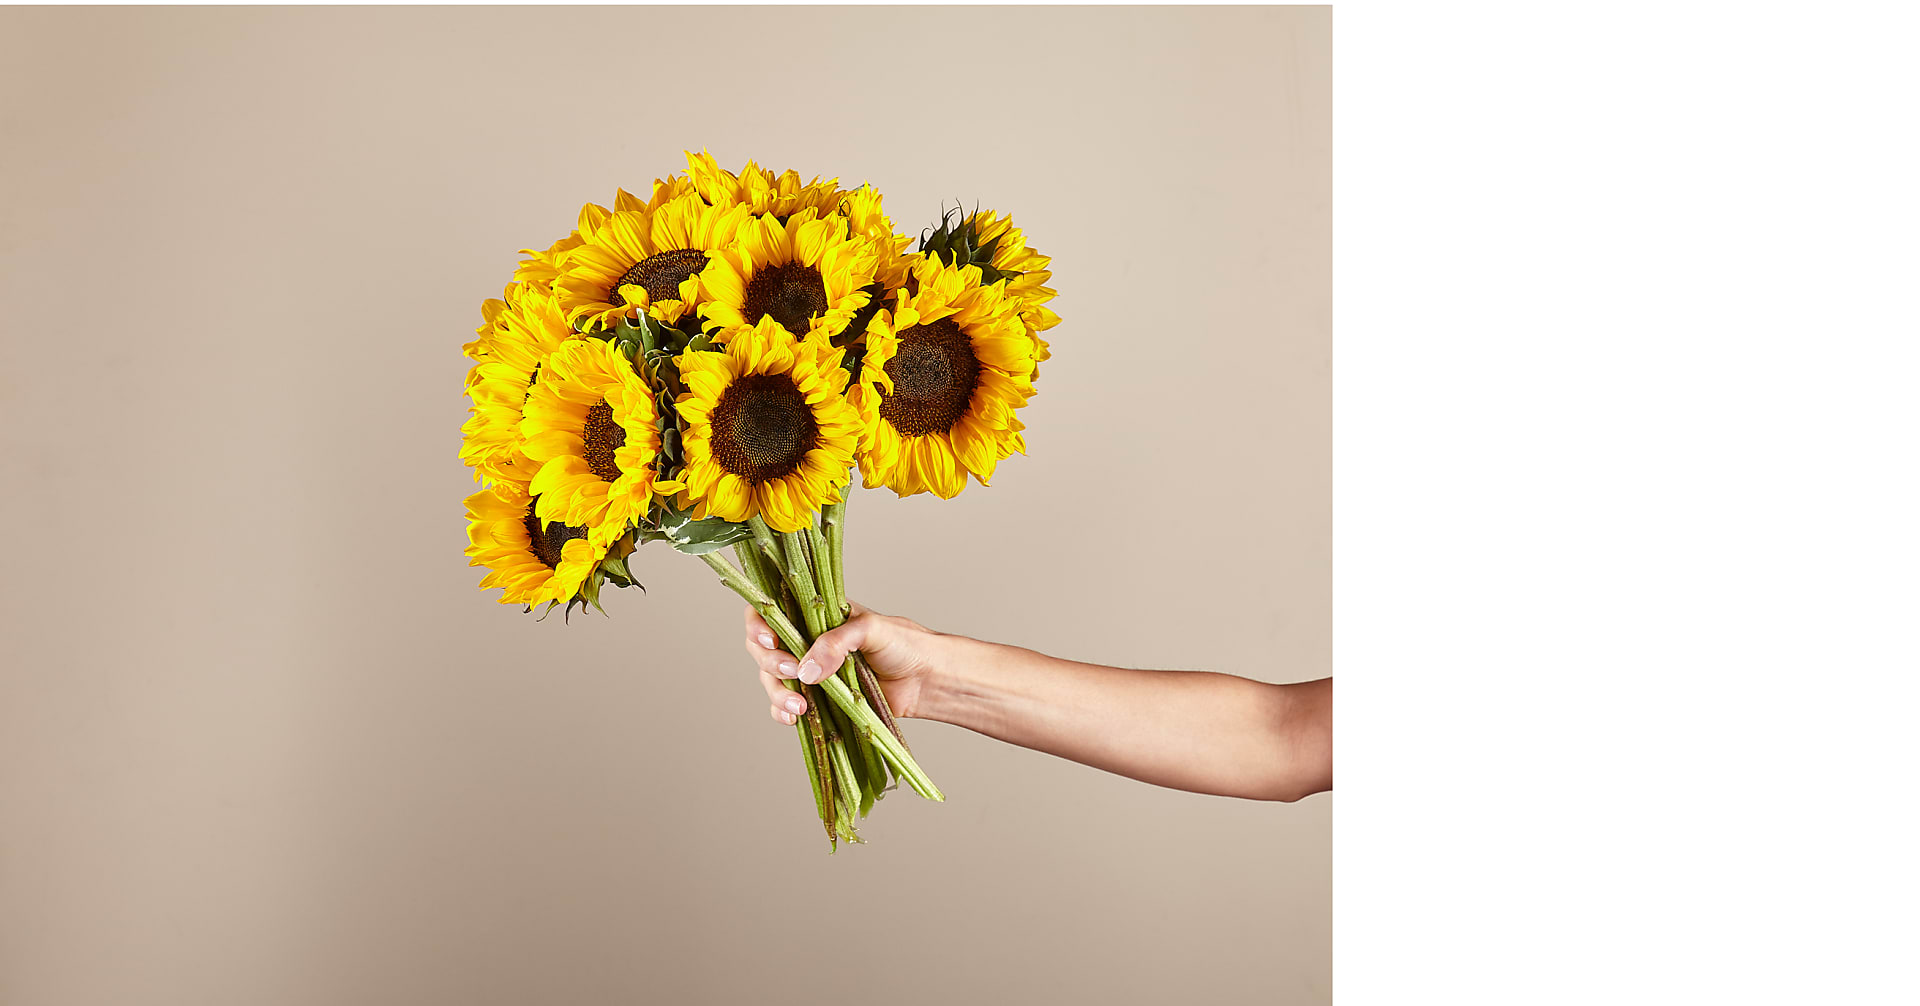 Honey Bee Sunflower Bouquet - Image 1 Of 2